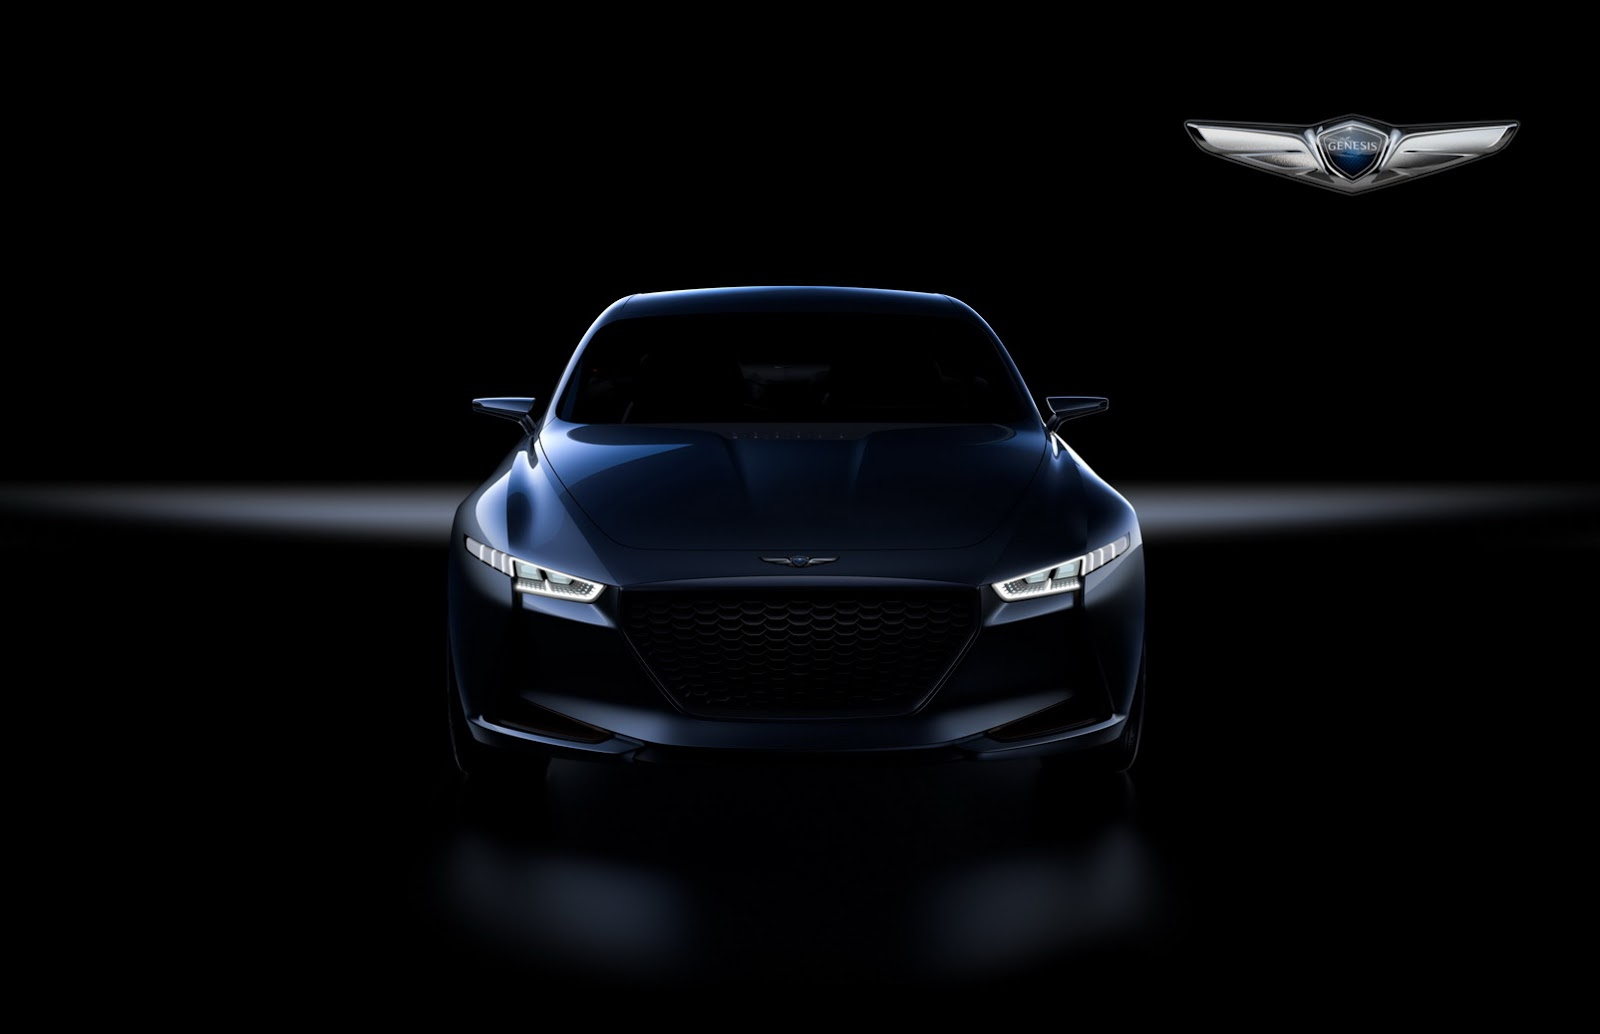 genesis new york concept may hint at bmw 3 series rival. Black Bedroom Furniture Sets. Home Design Ideas